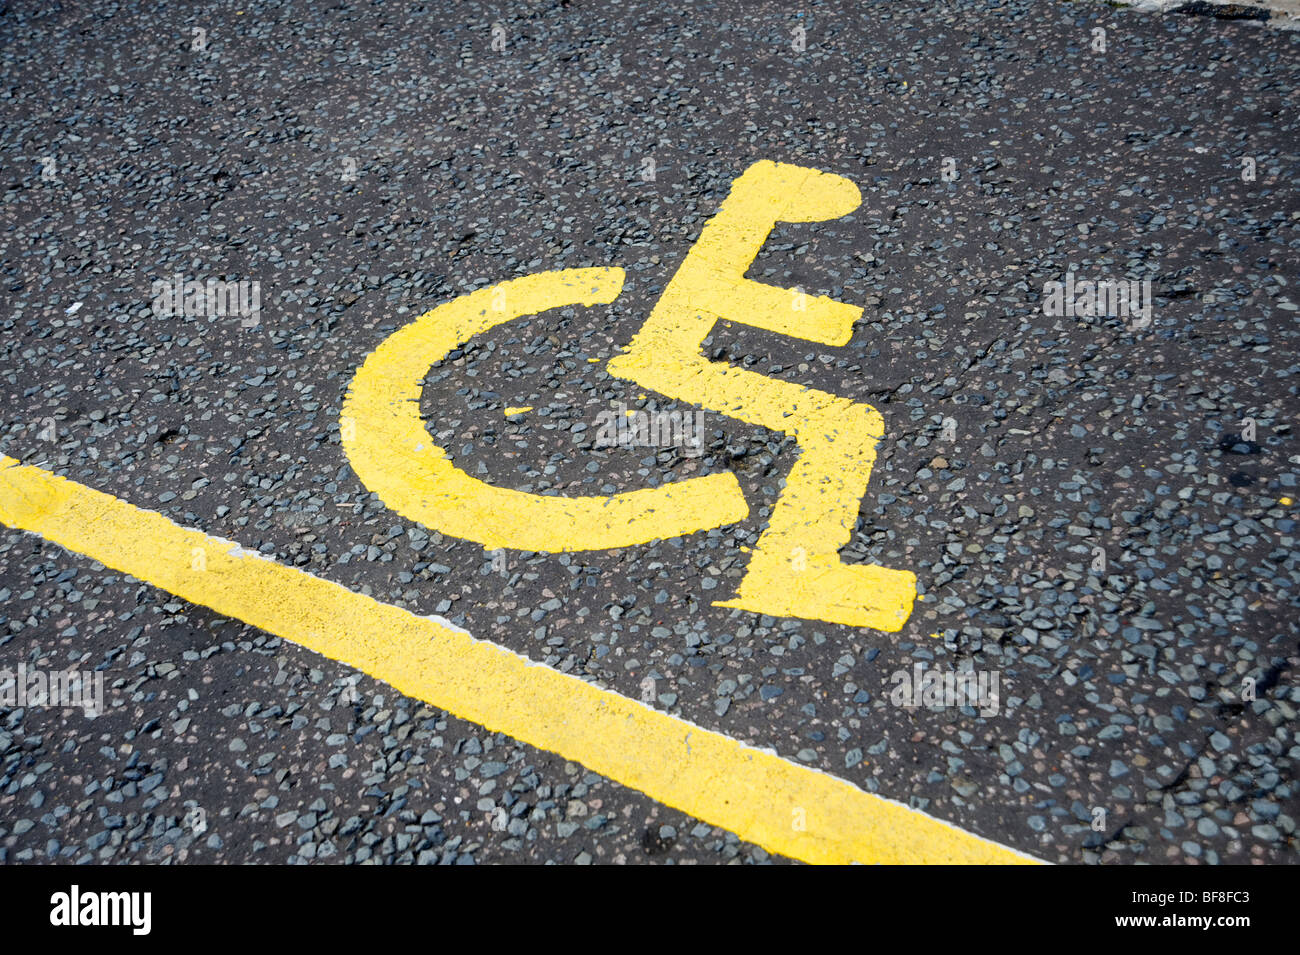 Disabled parking place sign. London. UK 2009. - Stock Image